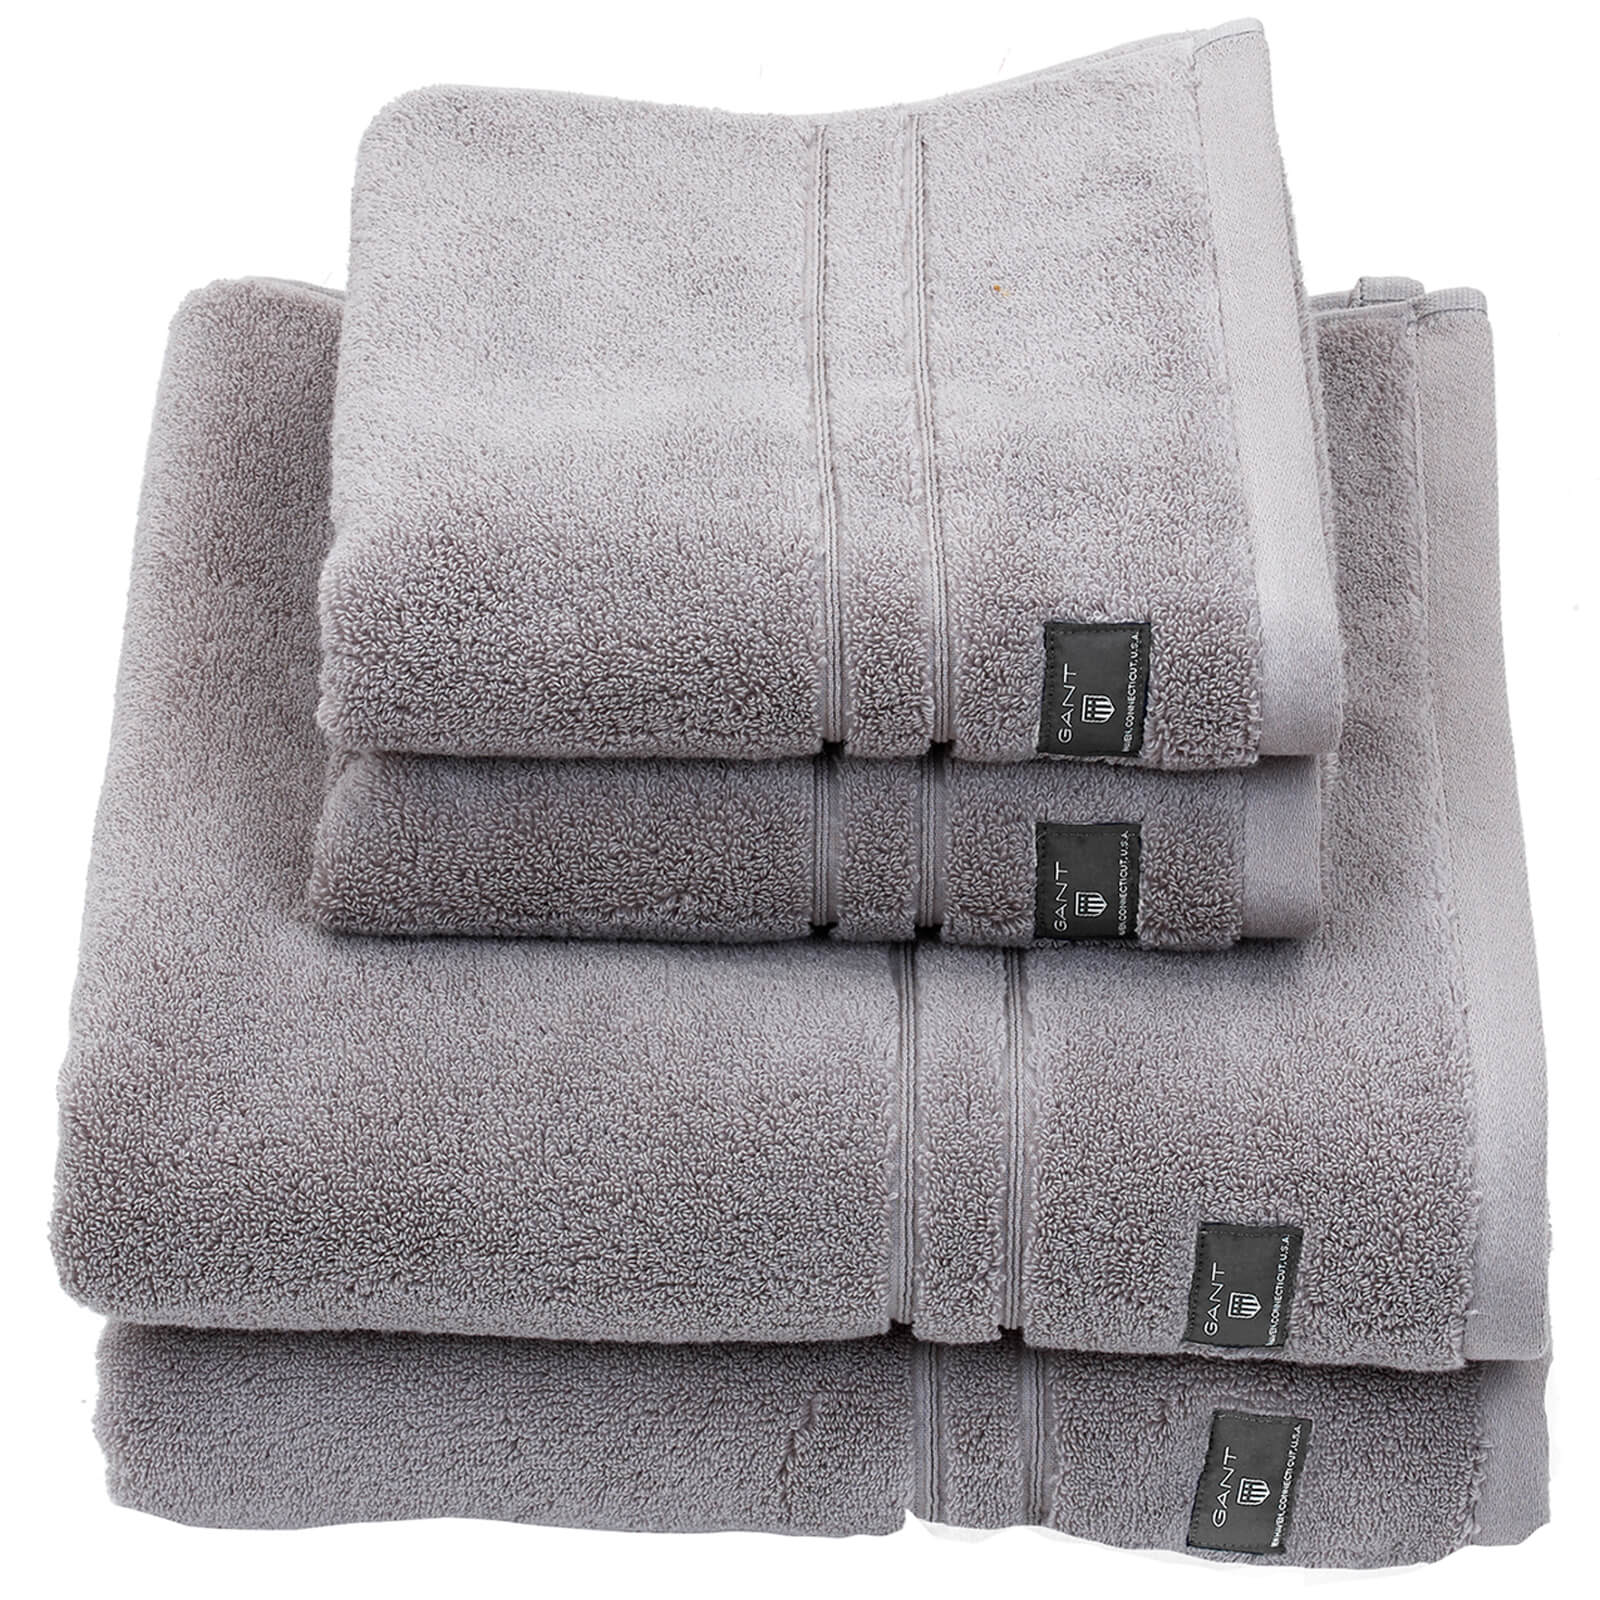 GANT Premium Terry Towel Range - Sheep Grey